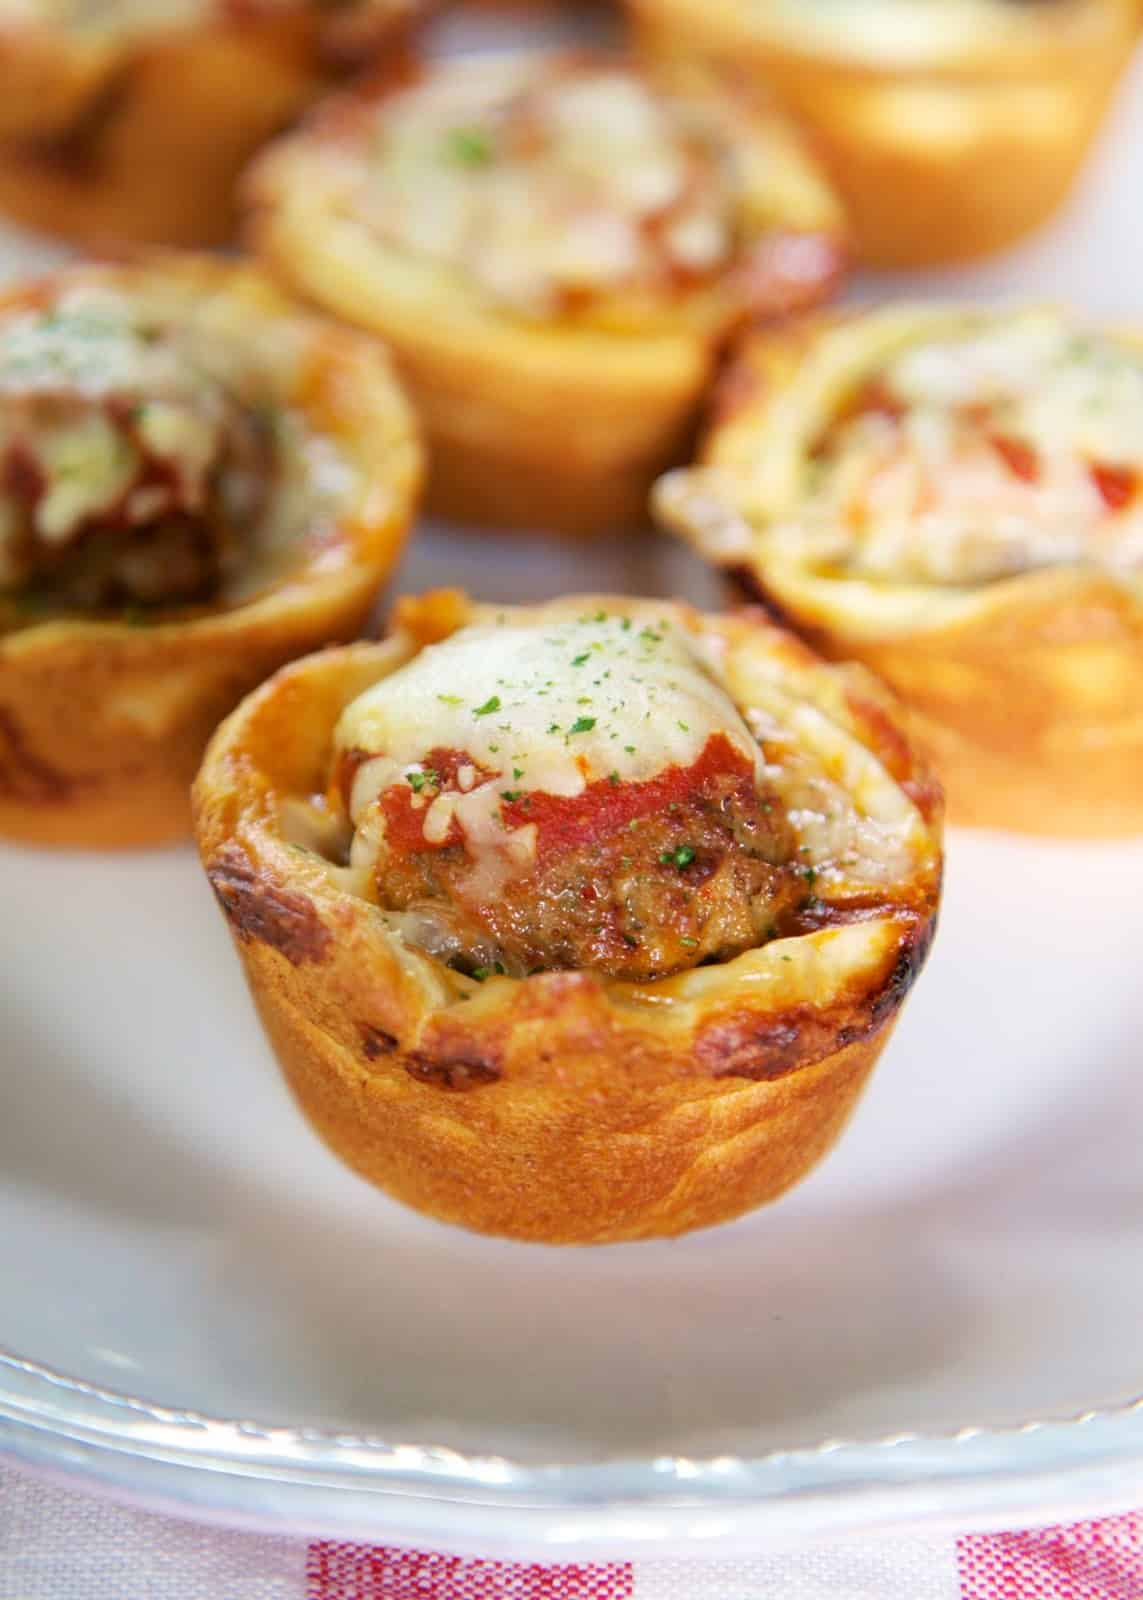 Meatball Sub Cupcakes - cream cheese, frozen meatballs, marinara and mozzarella stuffed in crescent rolls and baked in a muffin pan - SO good!! Great for lunch, dinner or a party!